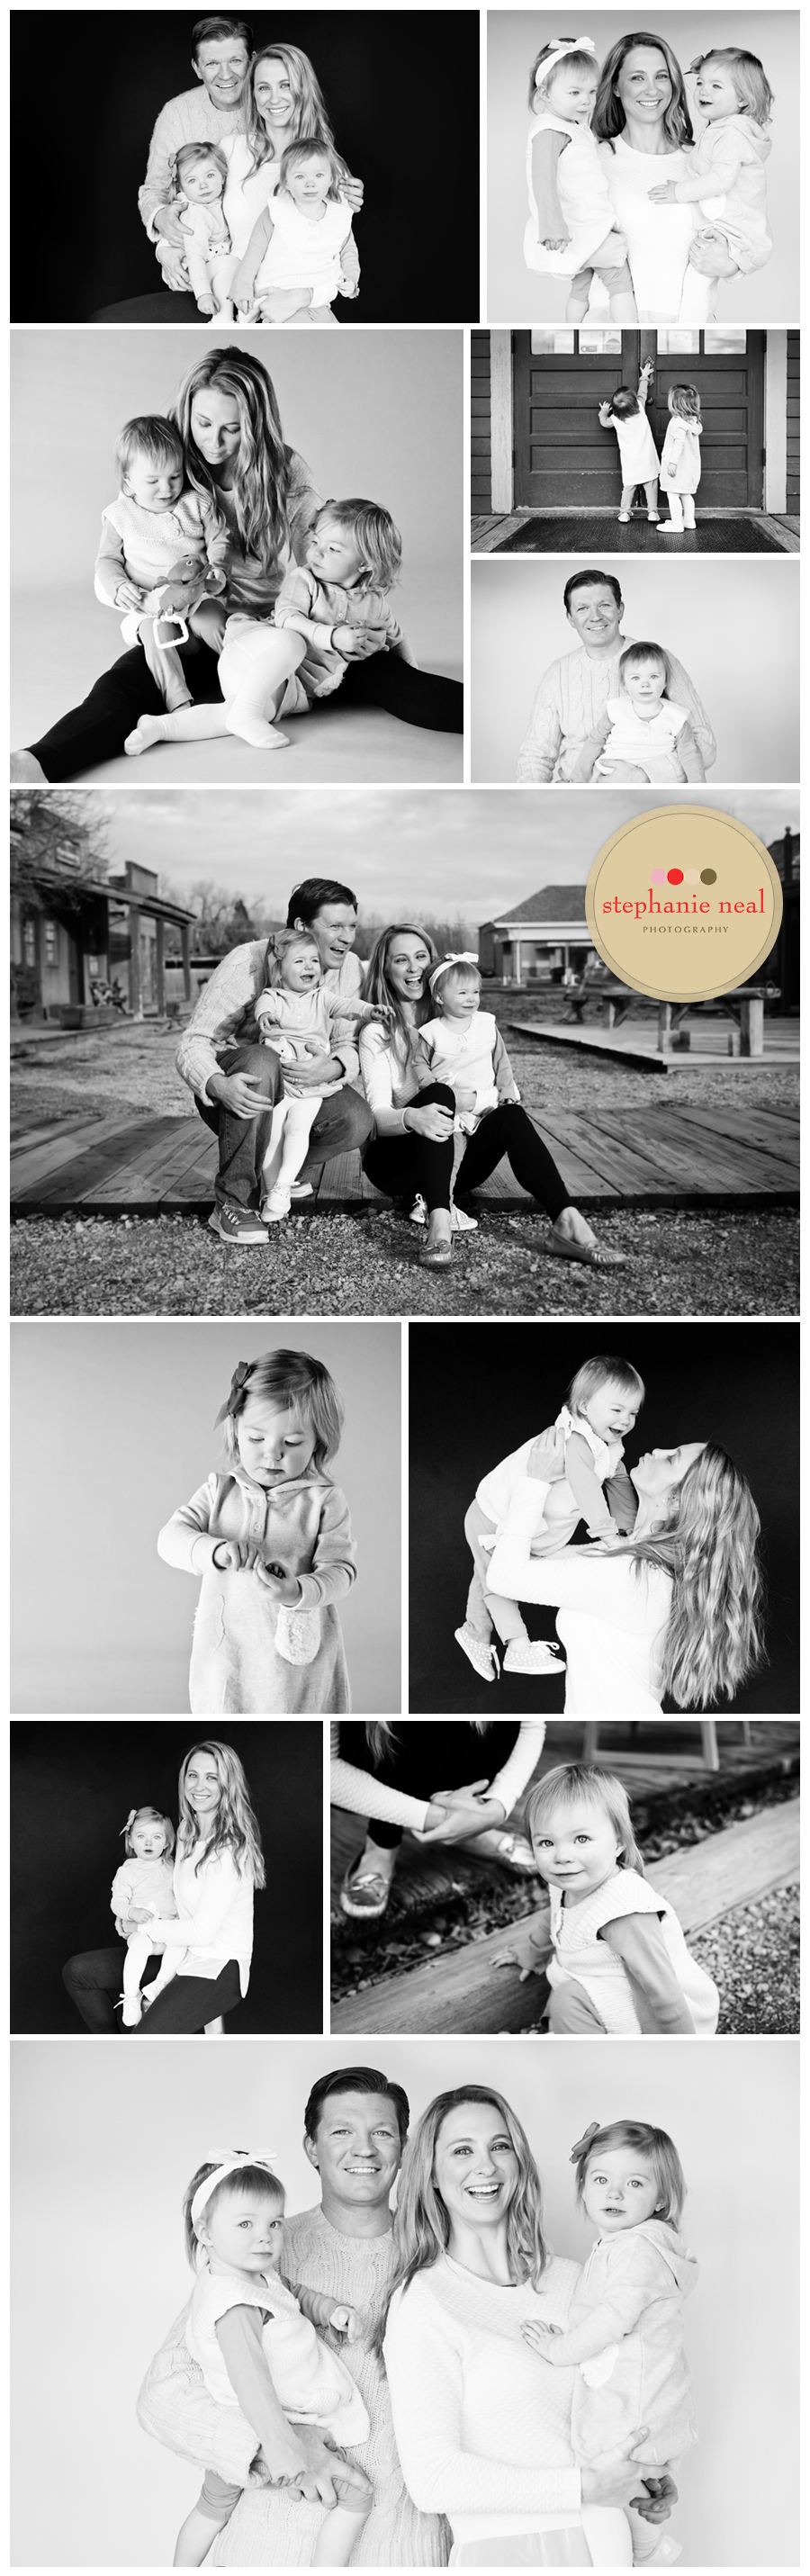 Stephanie Neal Photography, Park City Utah Family Portrait Photographer